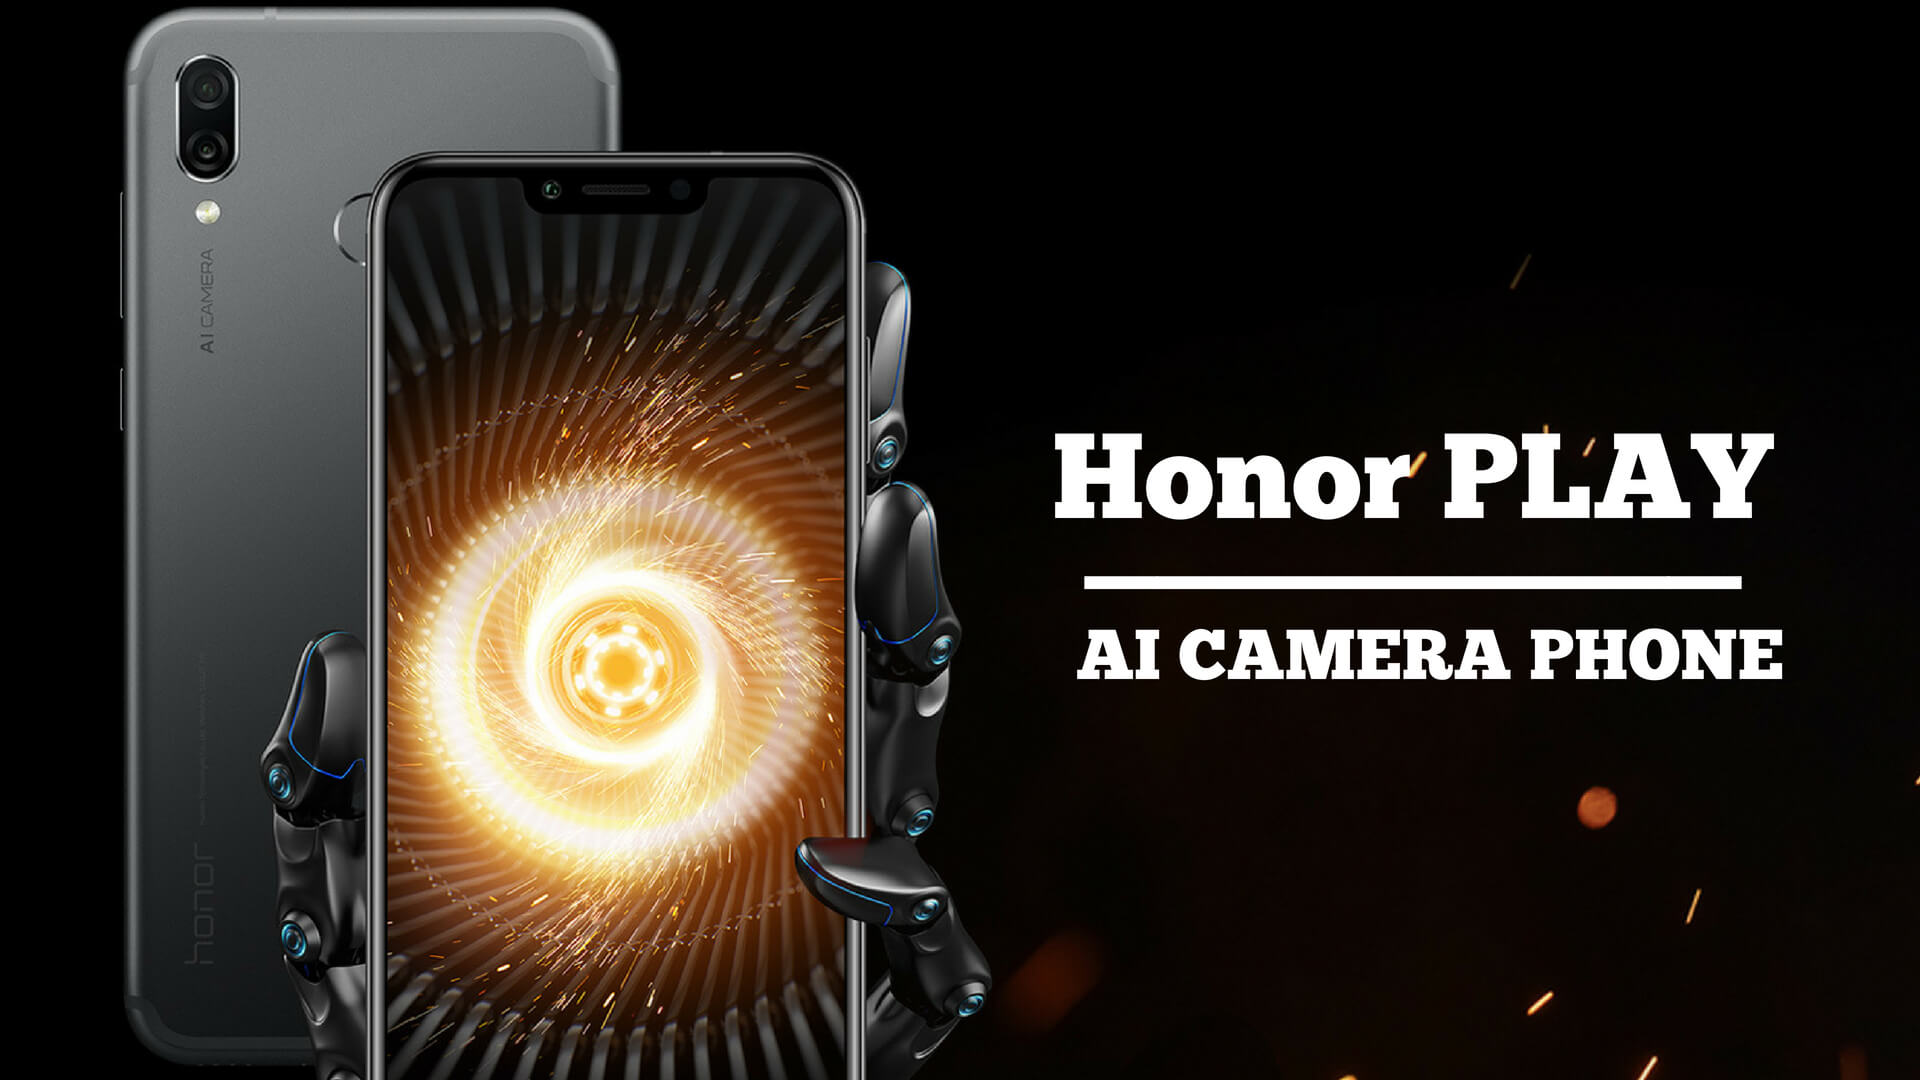 Honor Play Phone Review In Hindi | AI Camera Phone